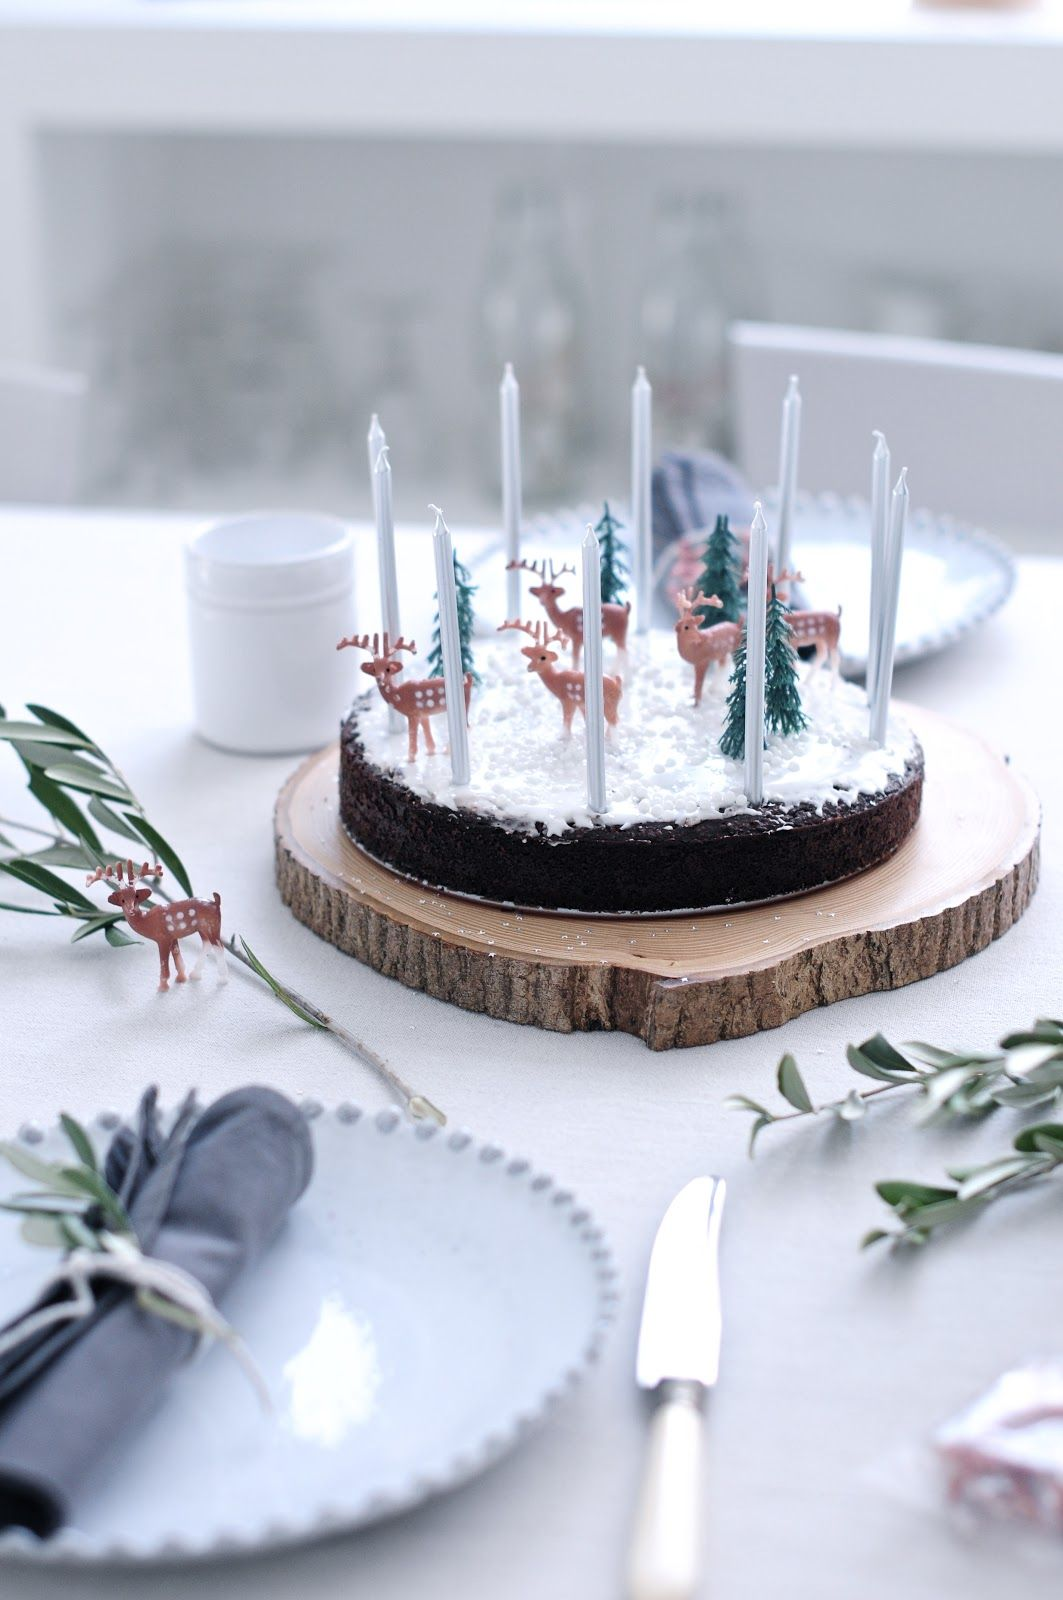 I ADORE the single reindeer off of the cake, too. That's rudolph.